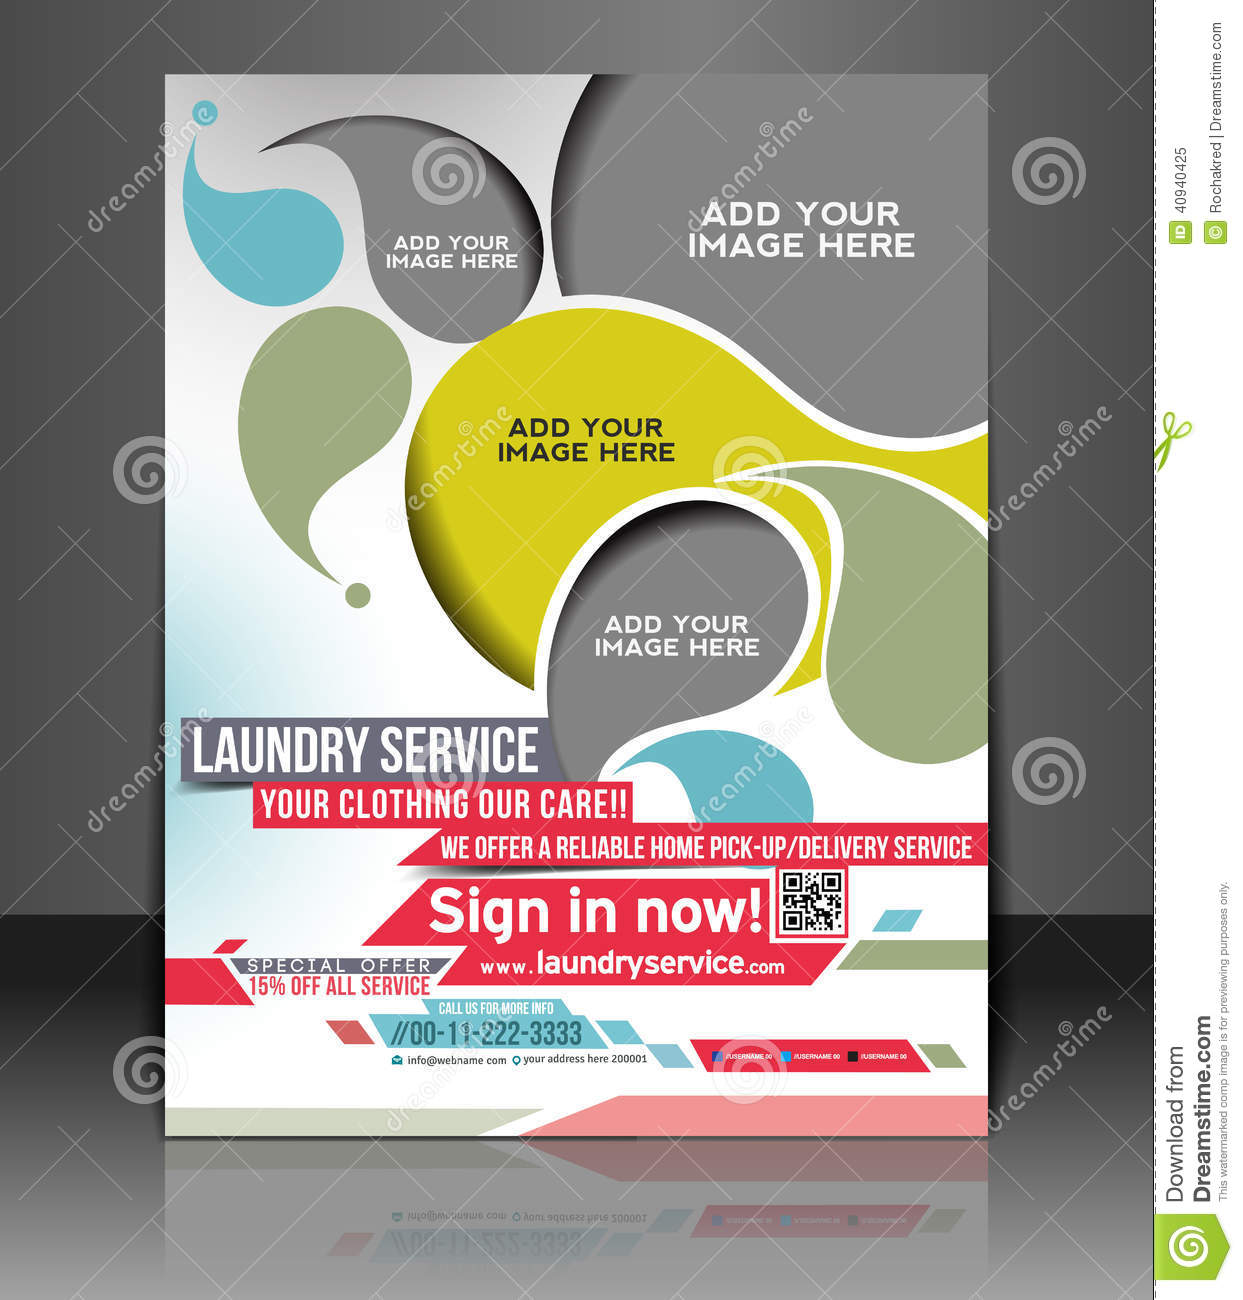 Laundry service flyer design stock vector illustration for Laundry flyers templates